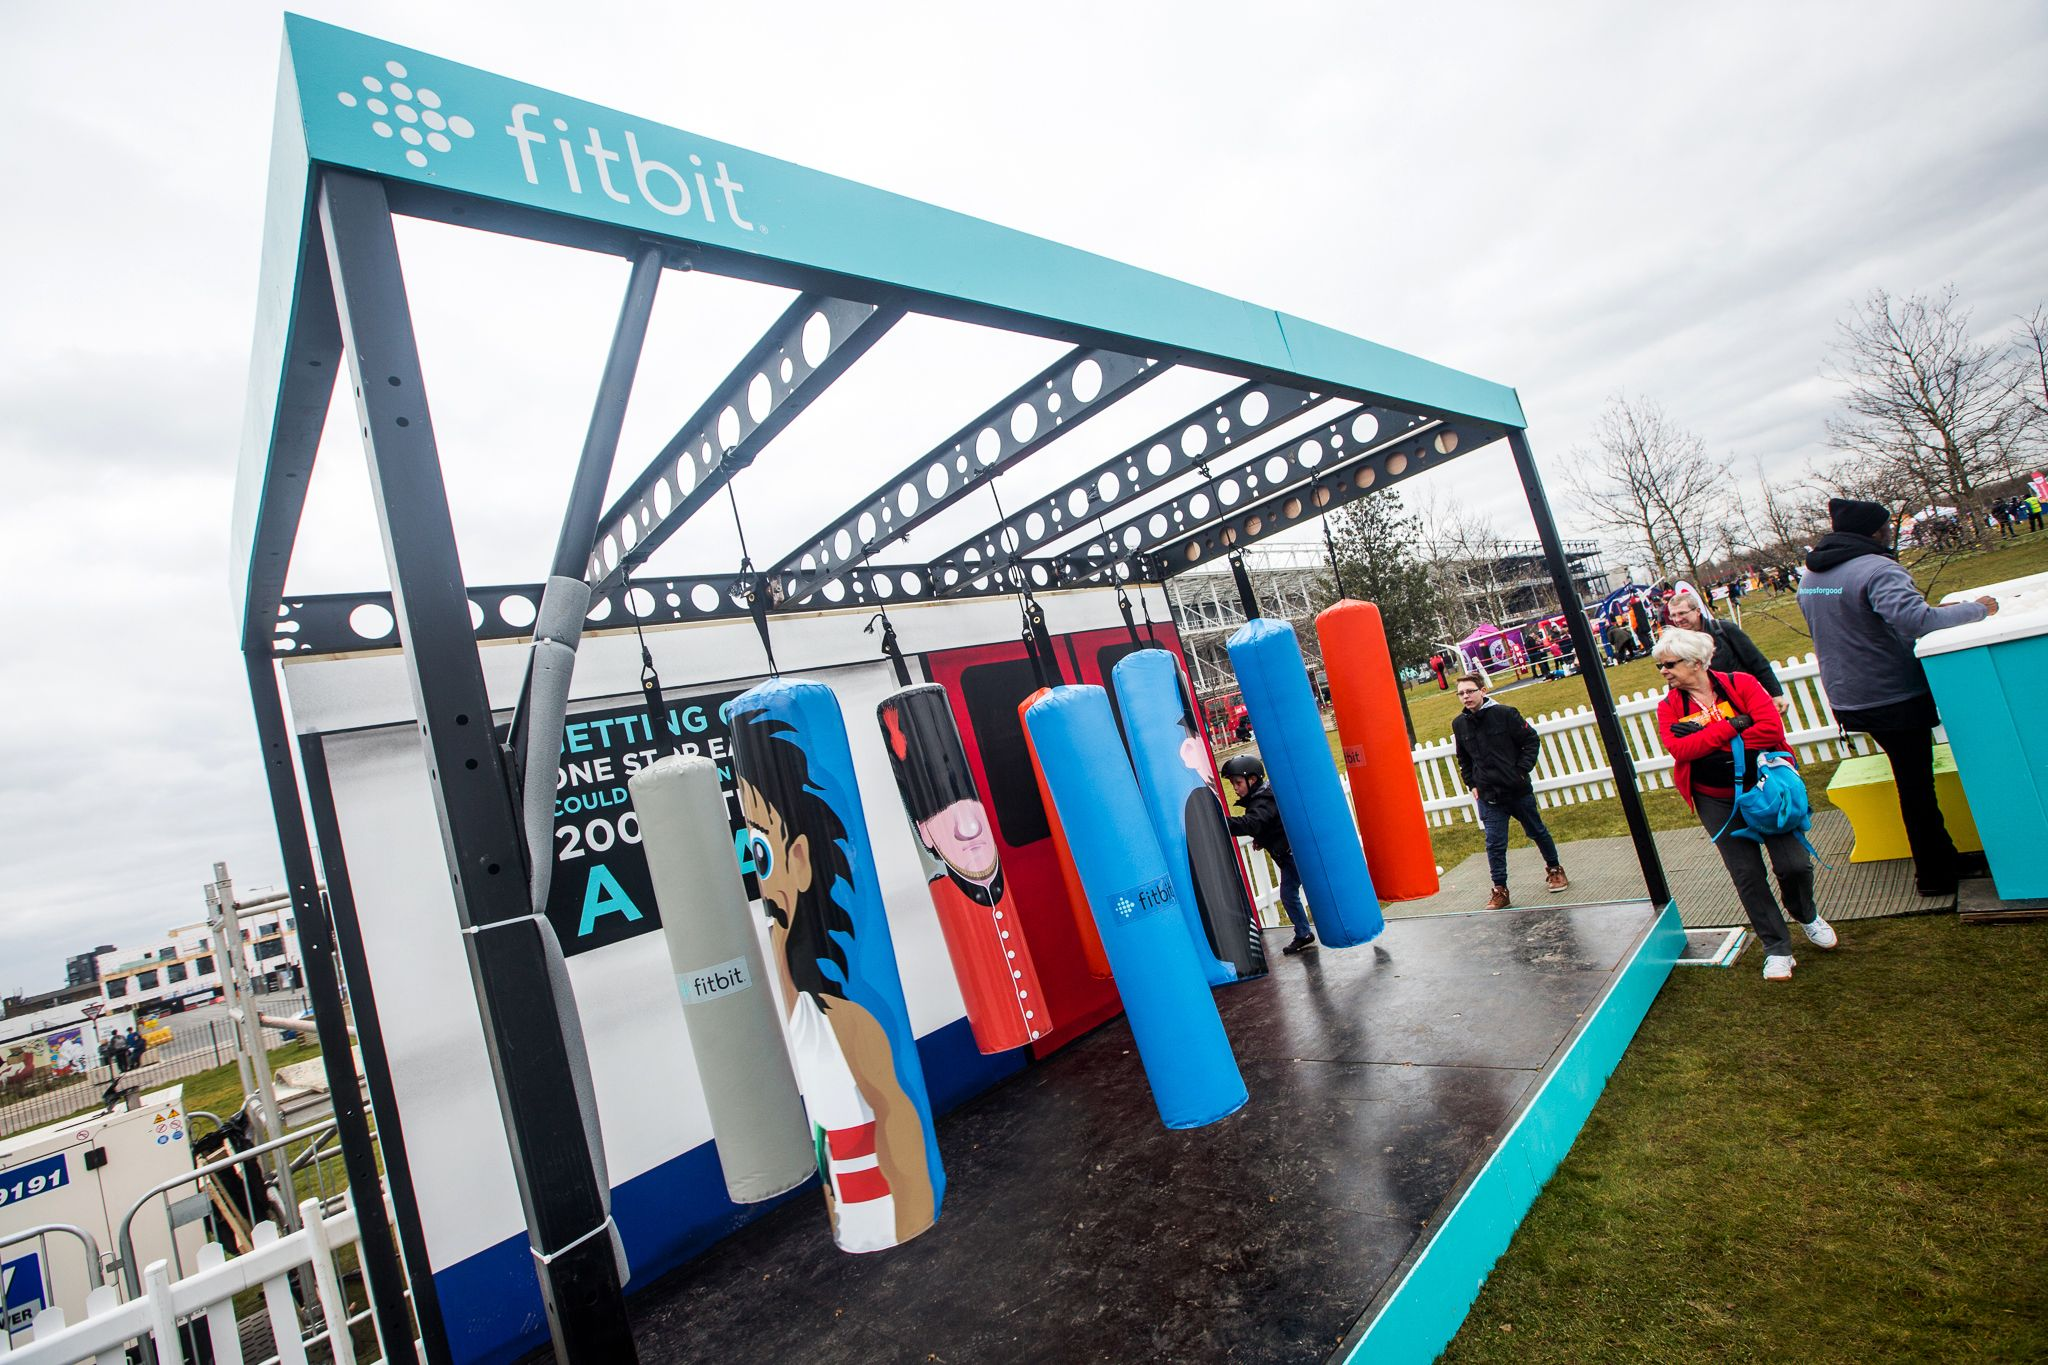 Activation designed and built by The Halo Group for our client Outside Collective on behalf of Fit Bit for Sports Relief. #Experiential #Marketing #CreativeStructure #BespokeStructure